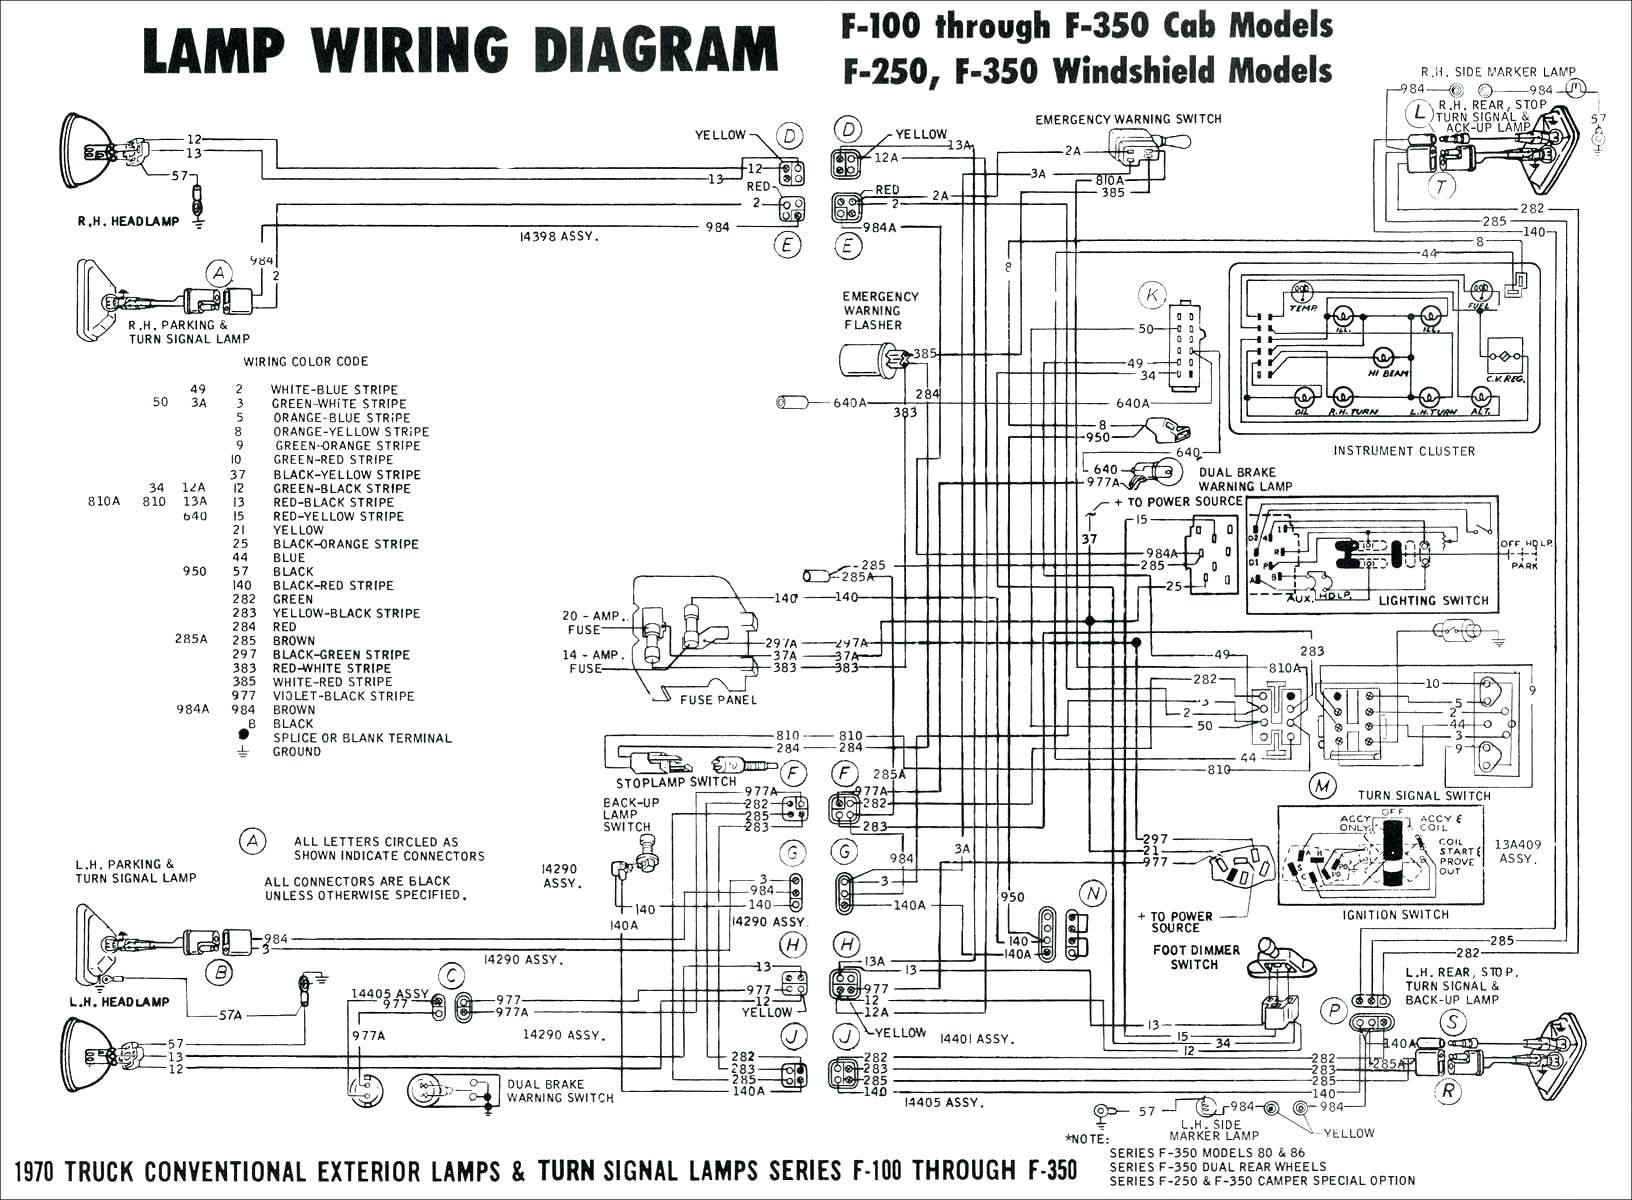 97 Honda Civic Engine Diagram 93 Civic Wiring Diagram Wiring Diagram toolbox Of 97 Honda Civic Engine Diagram